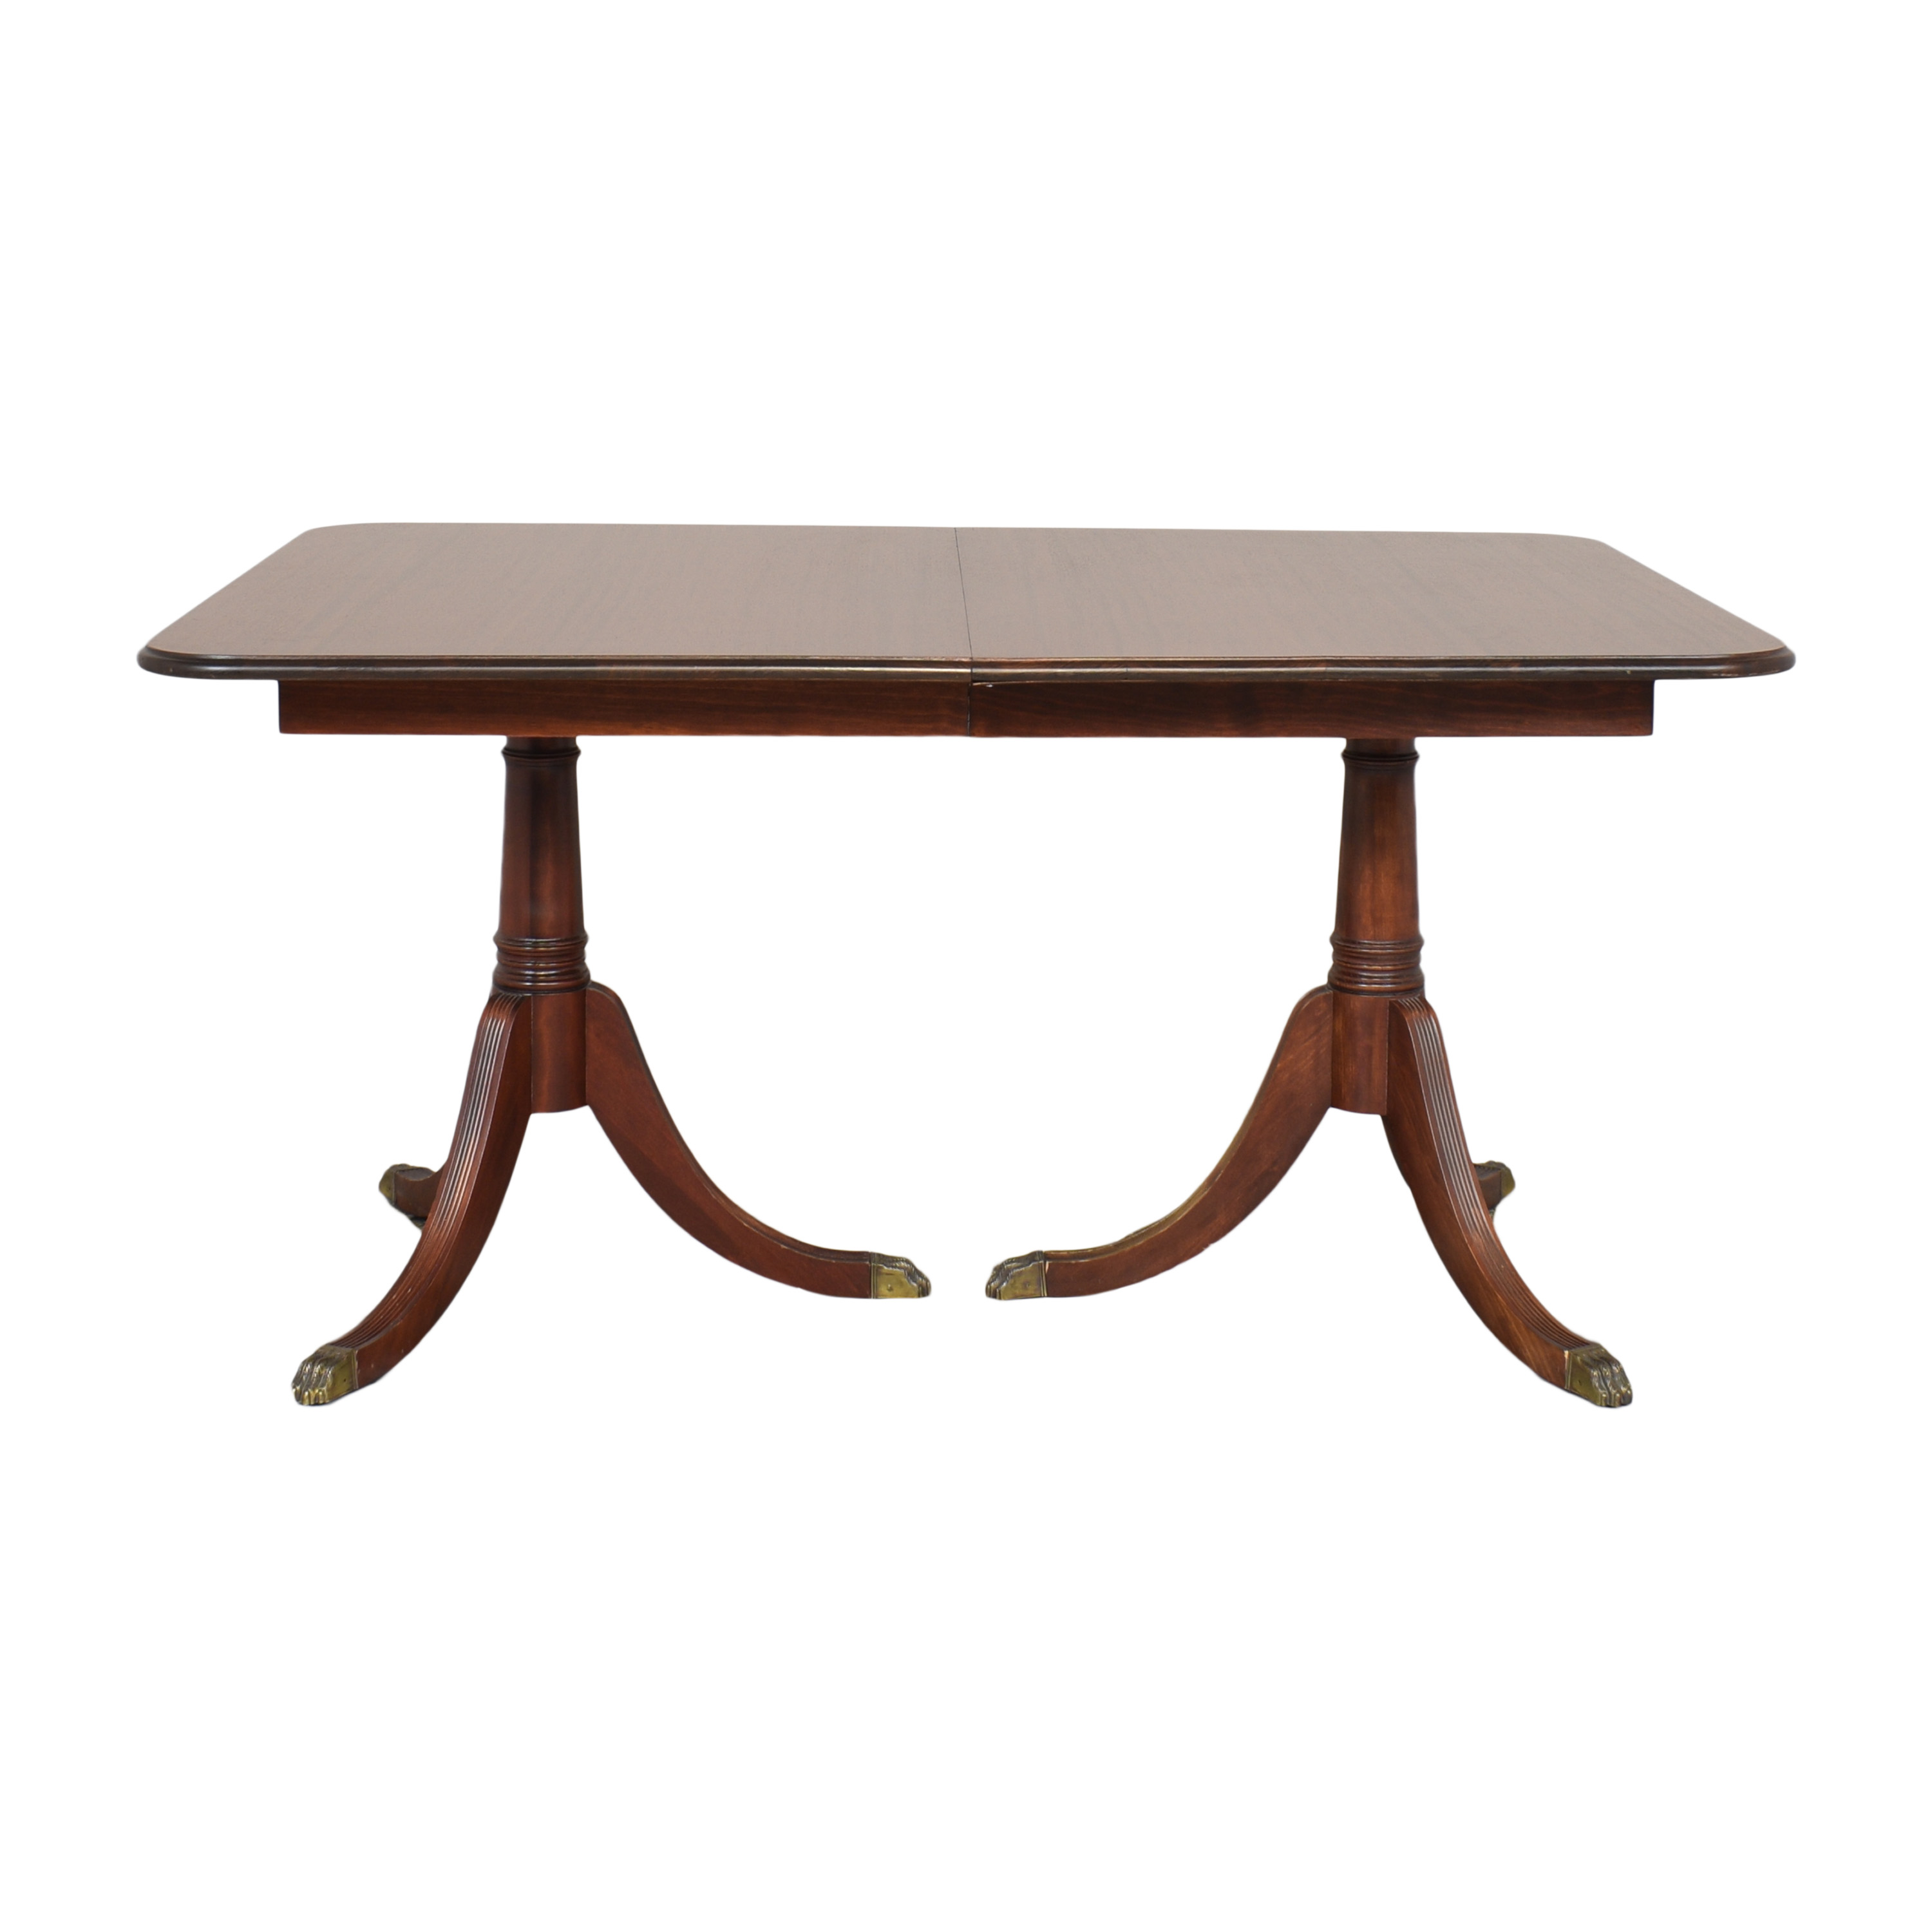 Double Pedestal Extendable Dining Table used